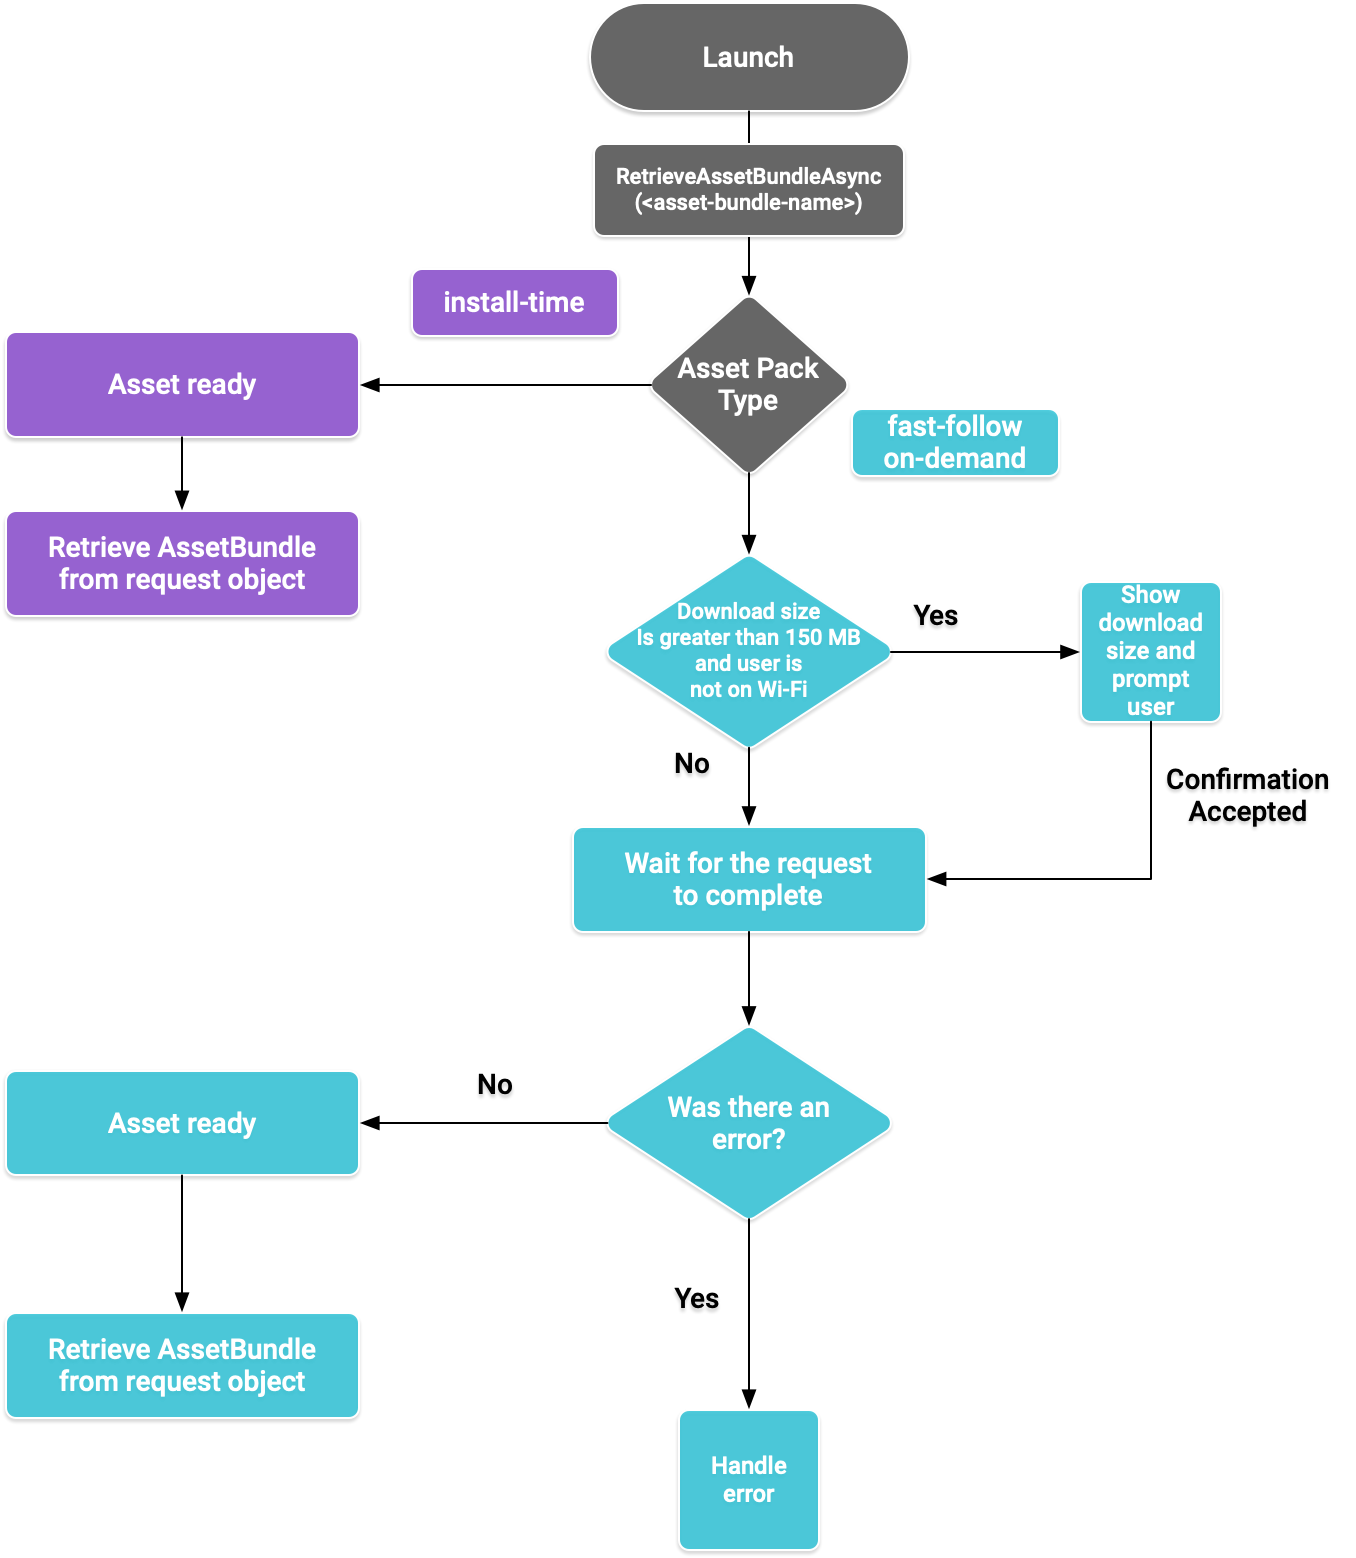 Asset pack flow diagram for the plugin